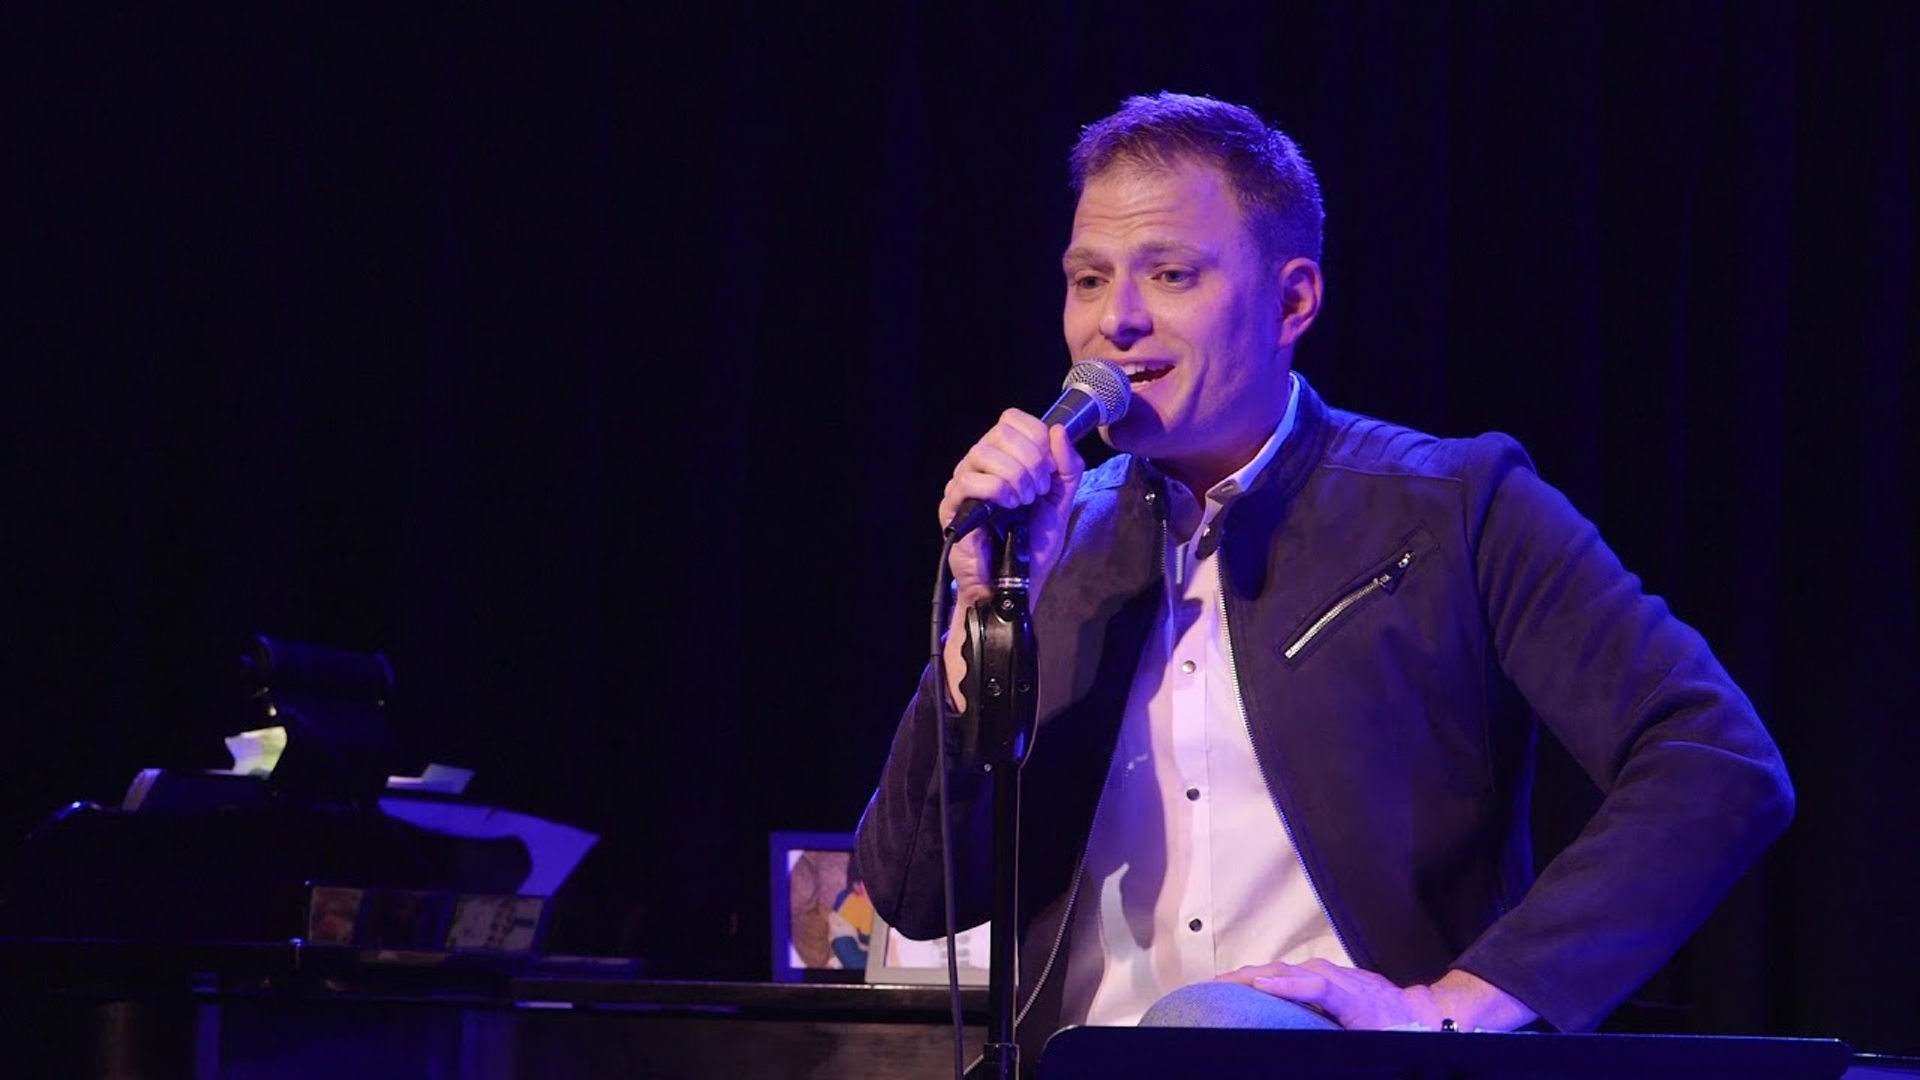 Live Show at the Triad Theatre 07/2018